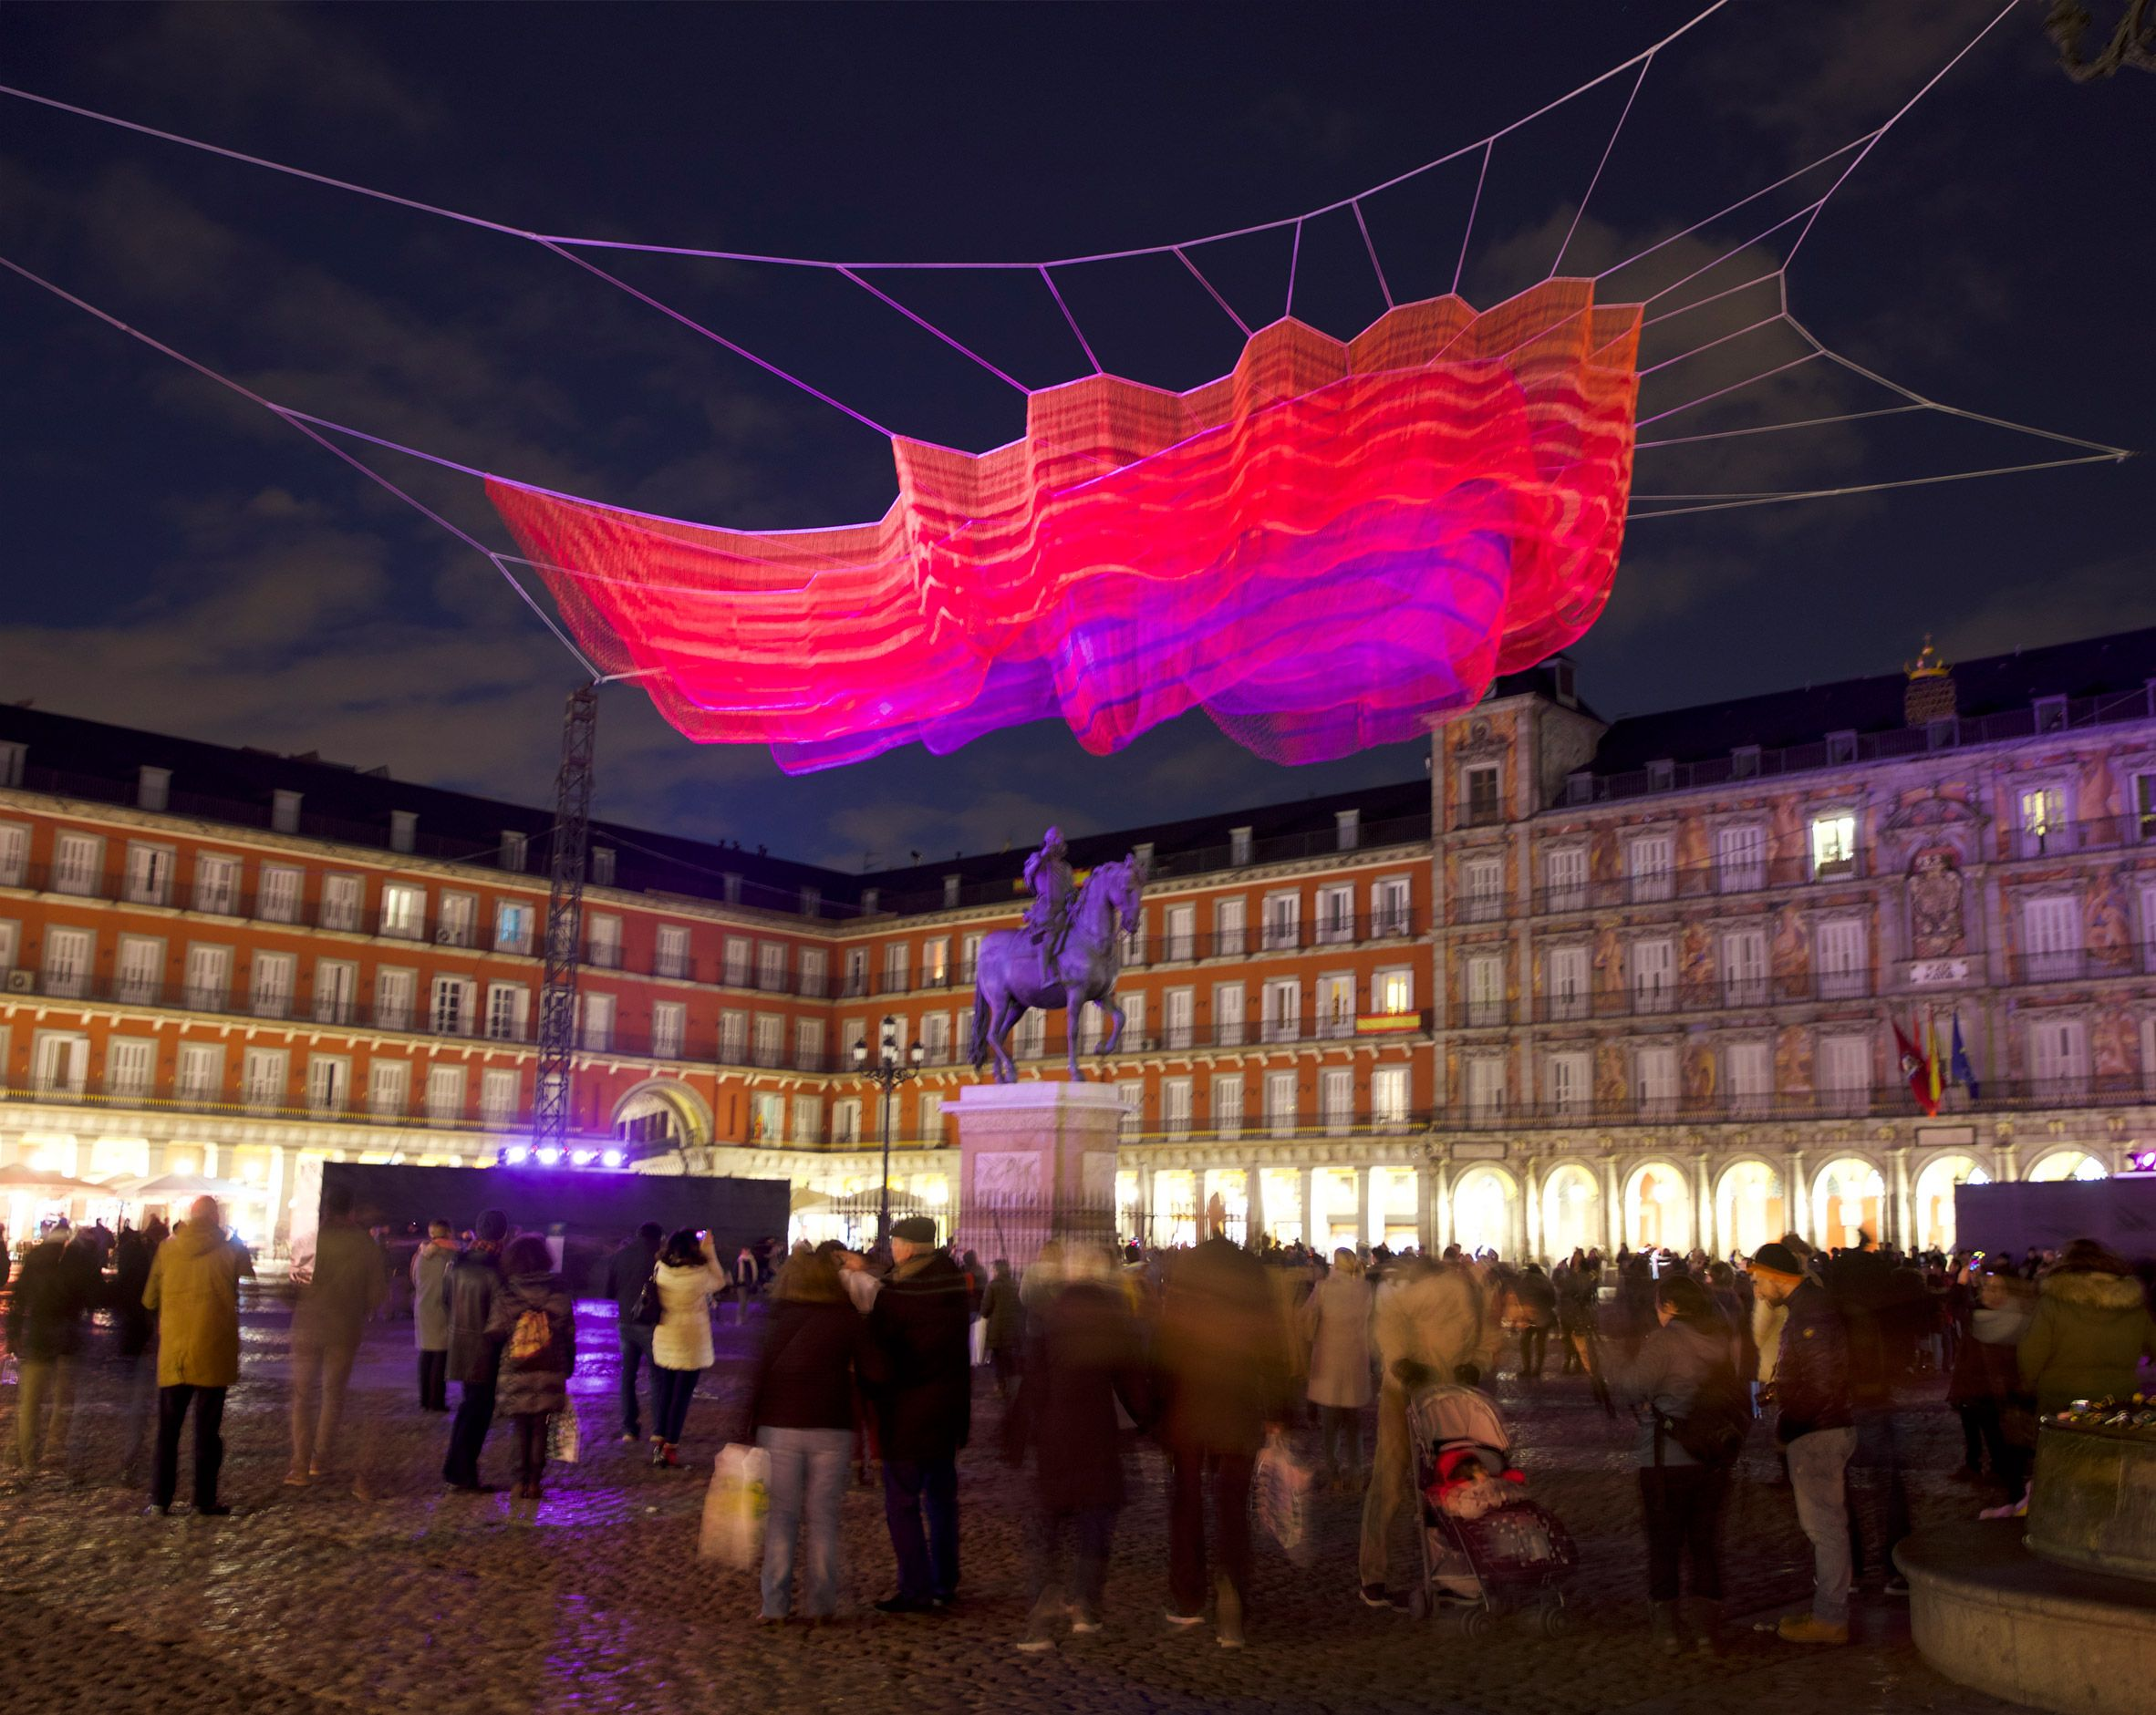 Janet Echelman installs huge netted sculpture above Madrid's Plaza Mayor